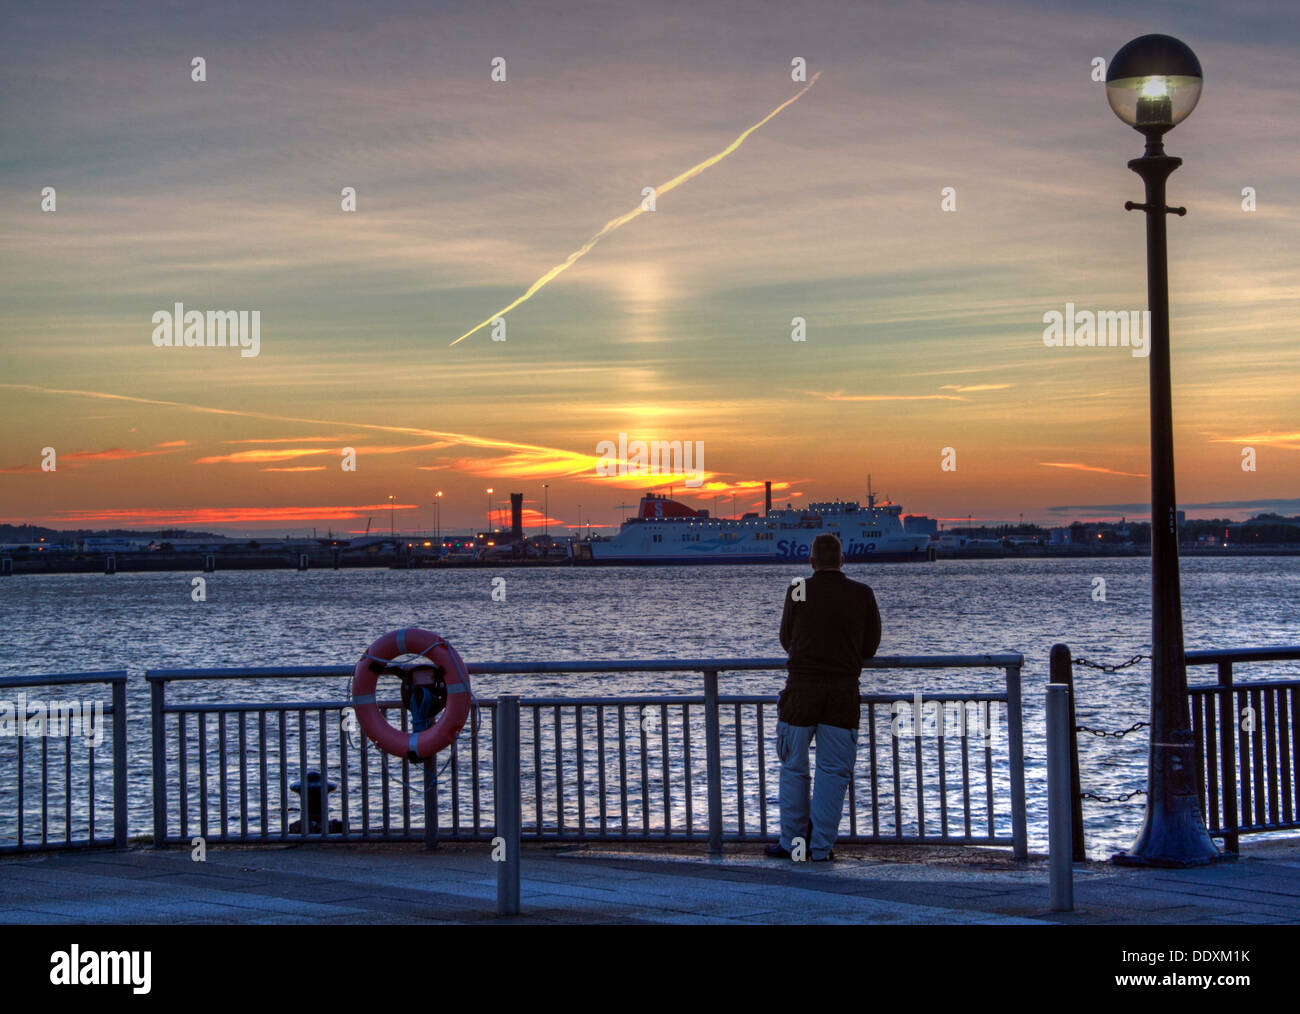 Man looking over to Birkenhead-Belfast Stena line ferry, from Albert Dock at Nighttime liverpool Merseyside England UK - Stock Image